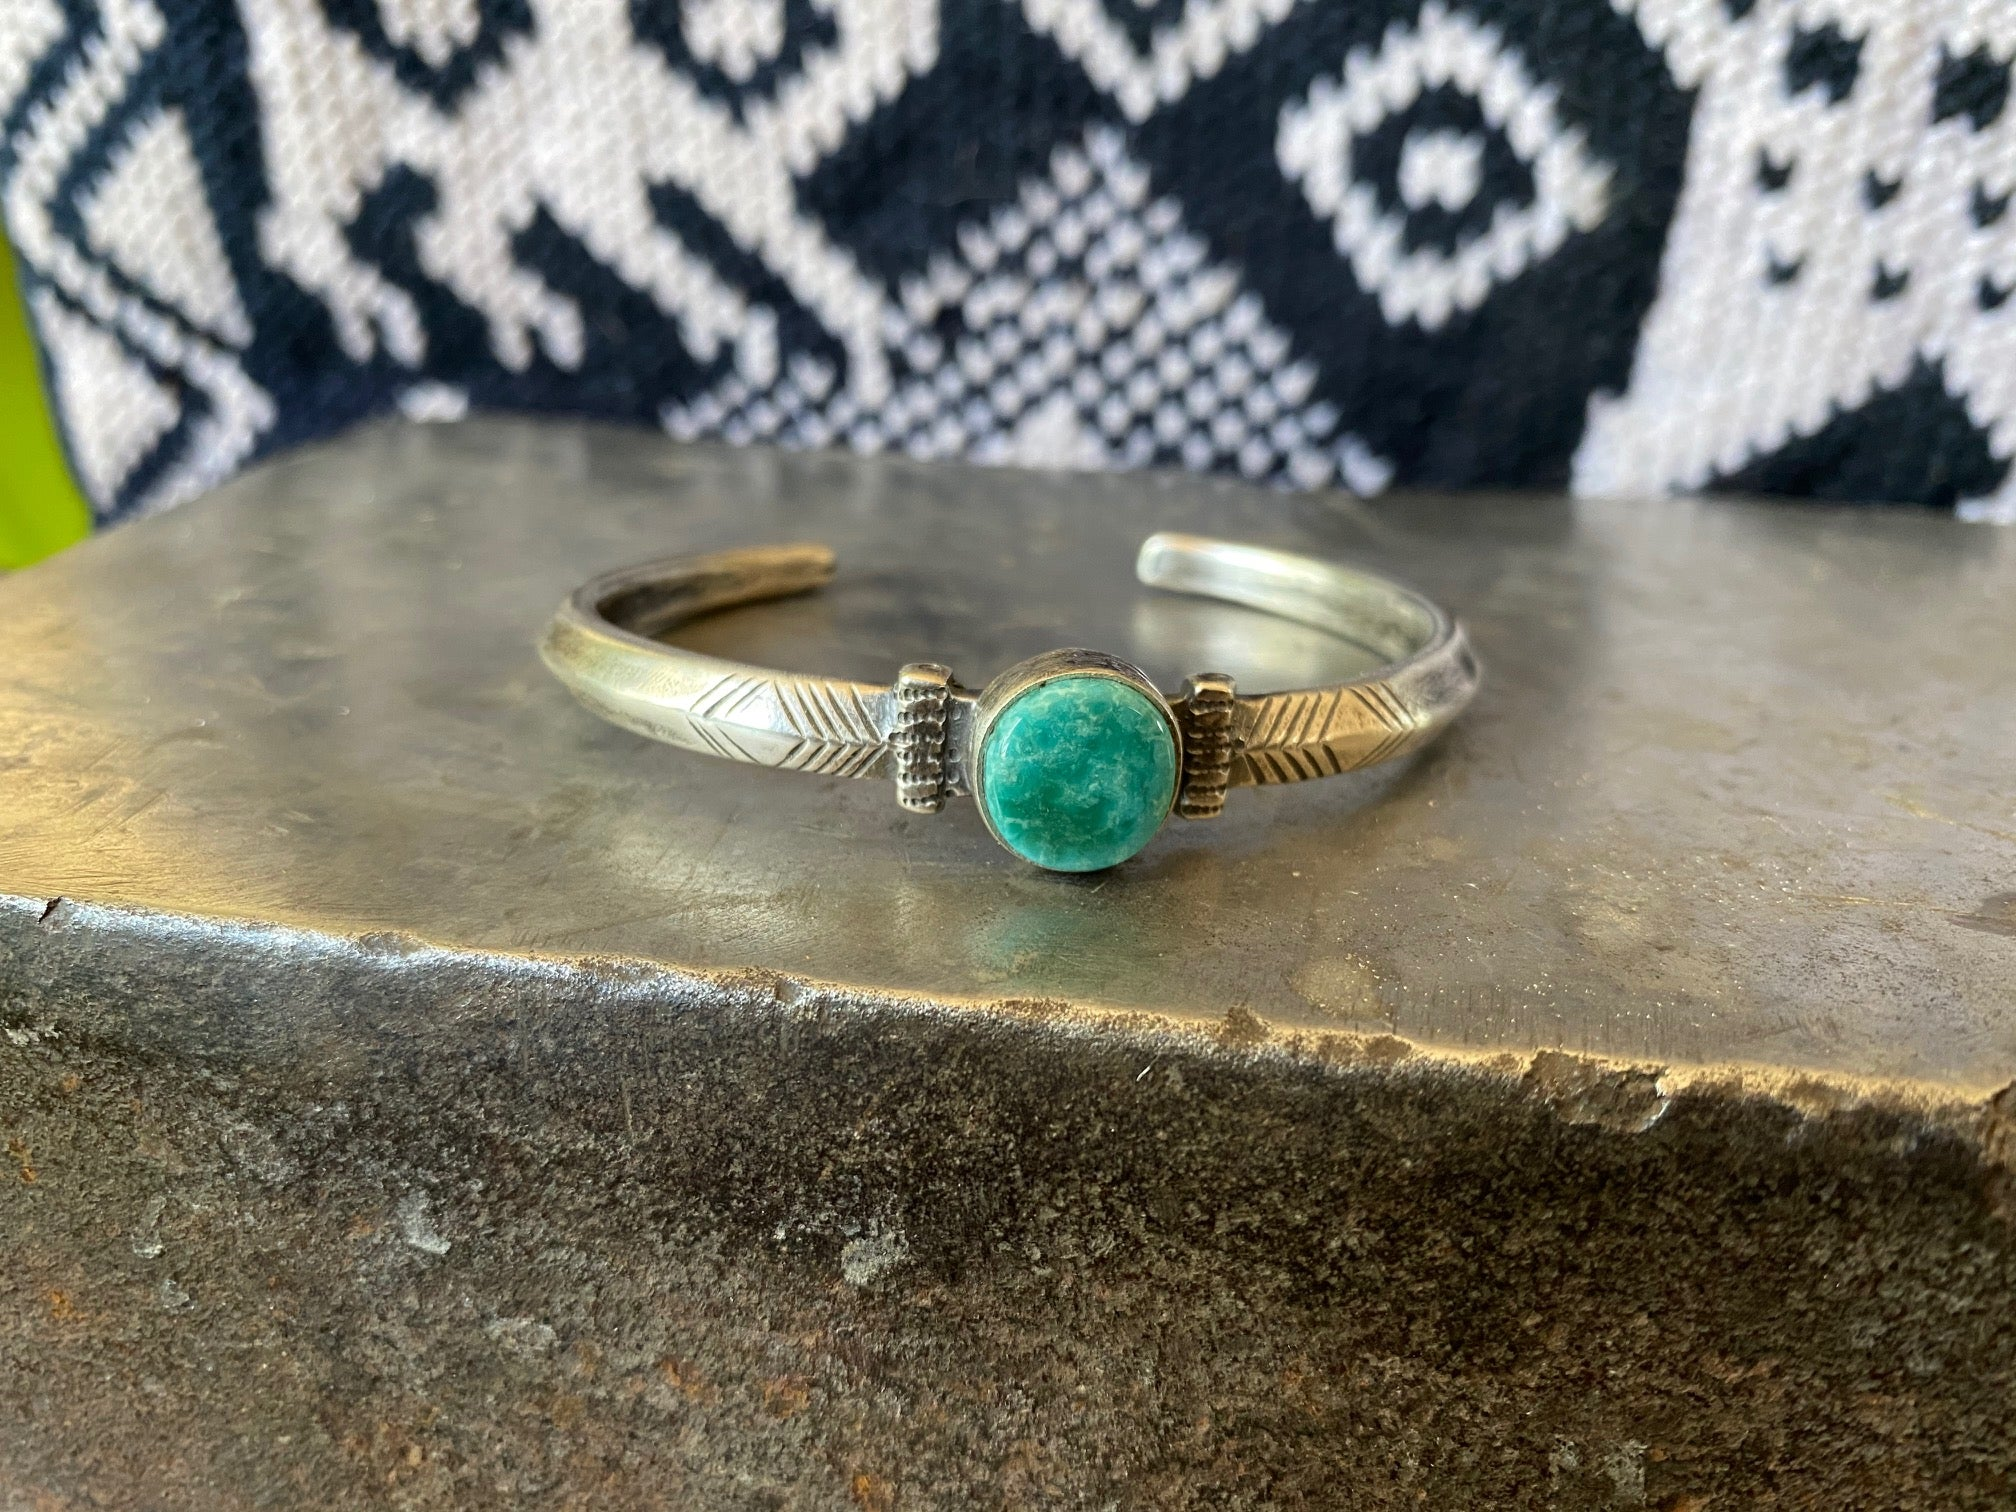 Silver bracelet with turquoise stone front